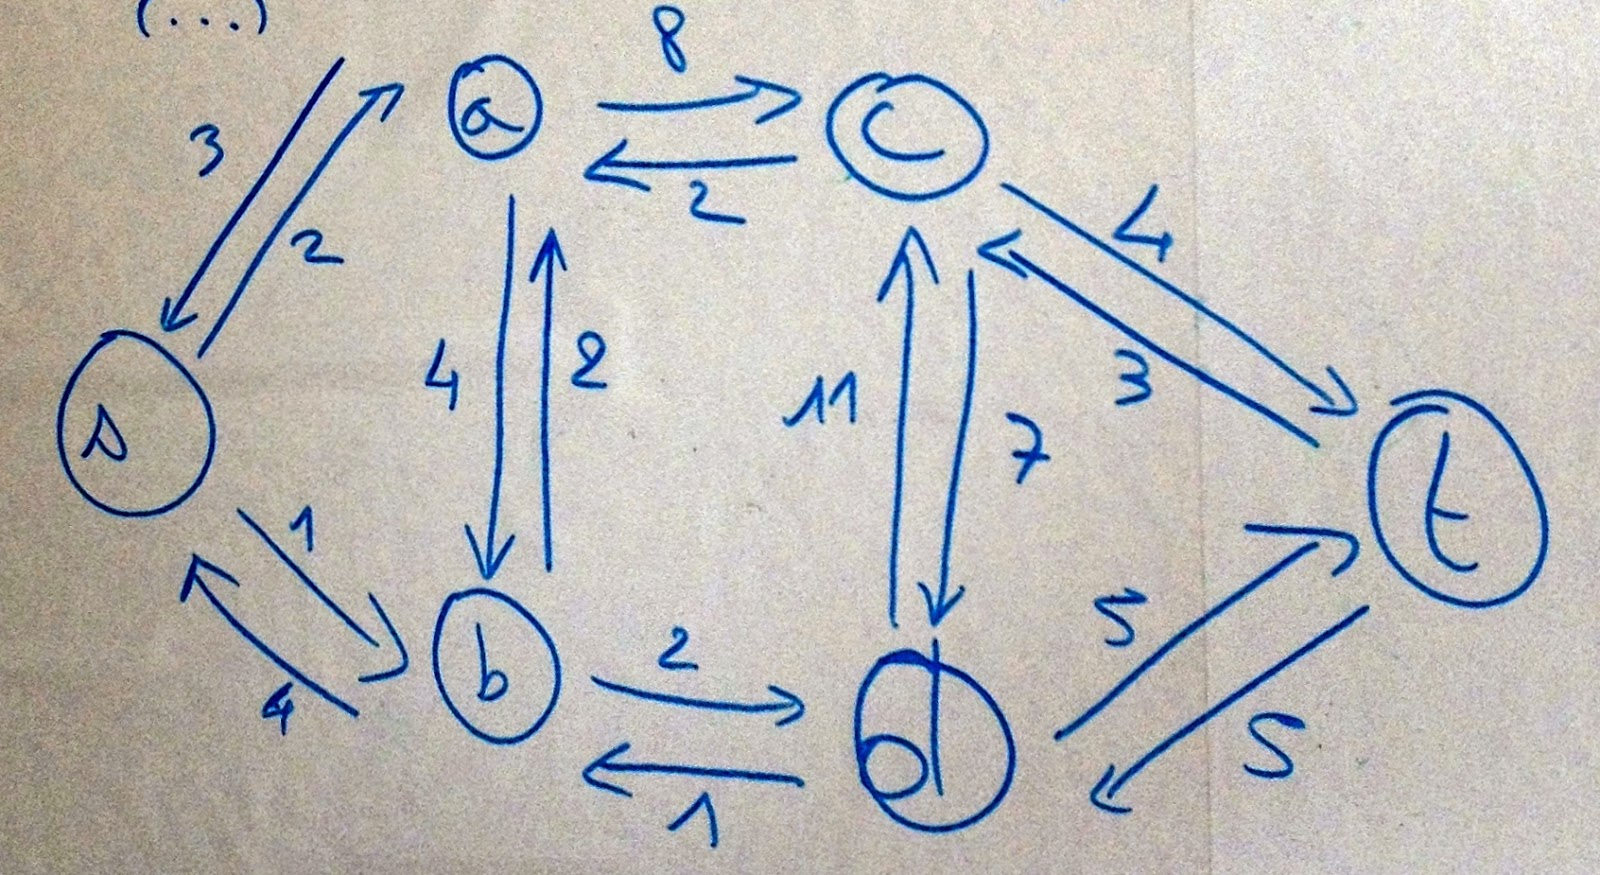 Example Of Line Drawing Algorithm : Dijkstra routing algorithm: how it calculates a shortest path tree